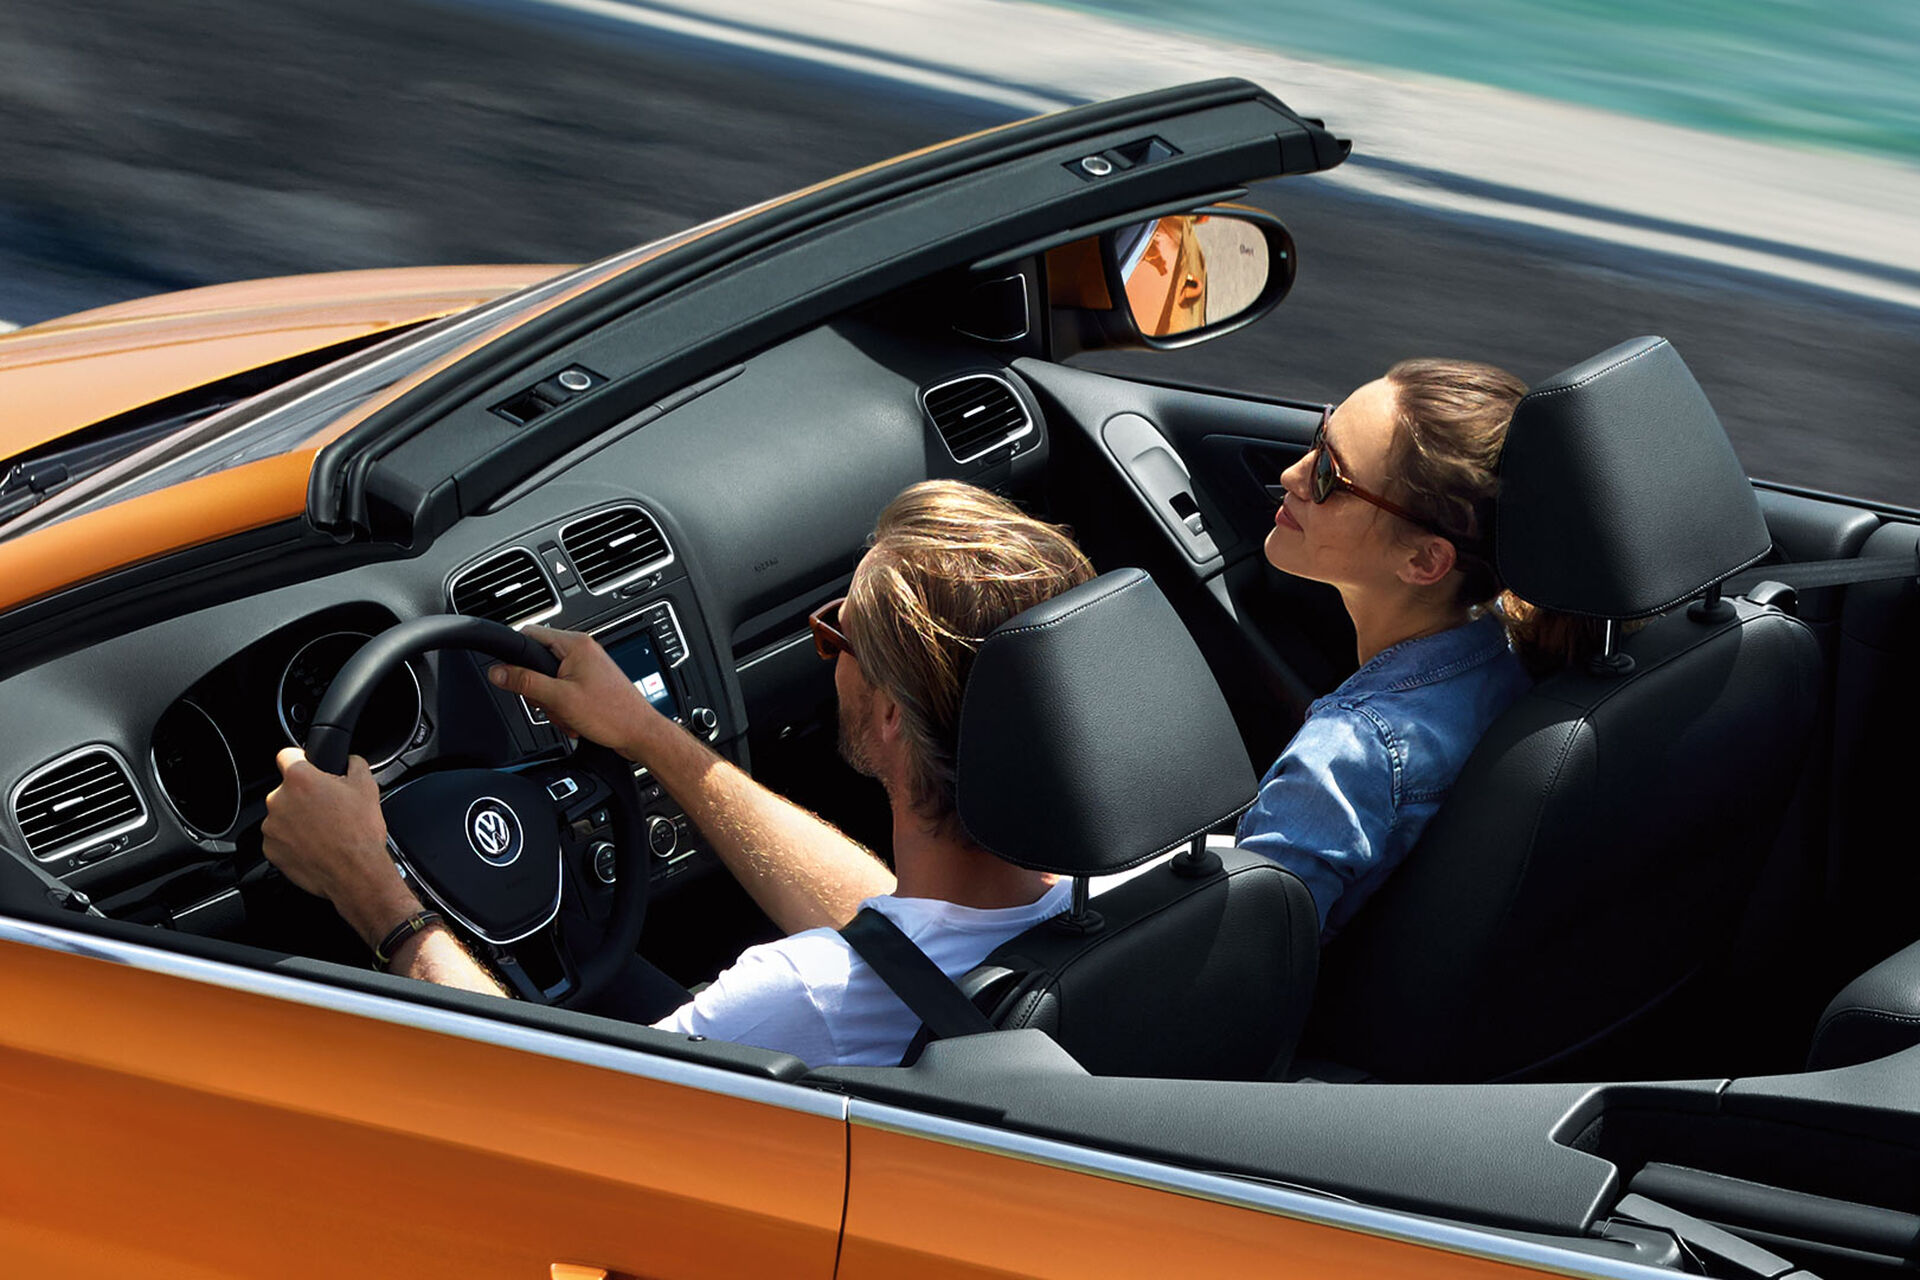 vw golf cabriolet orange oben